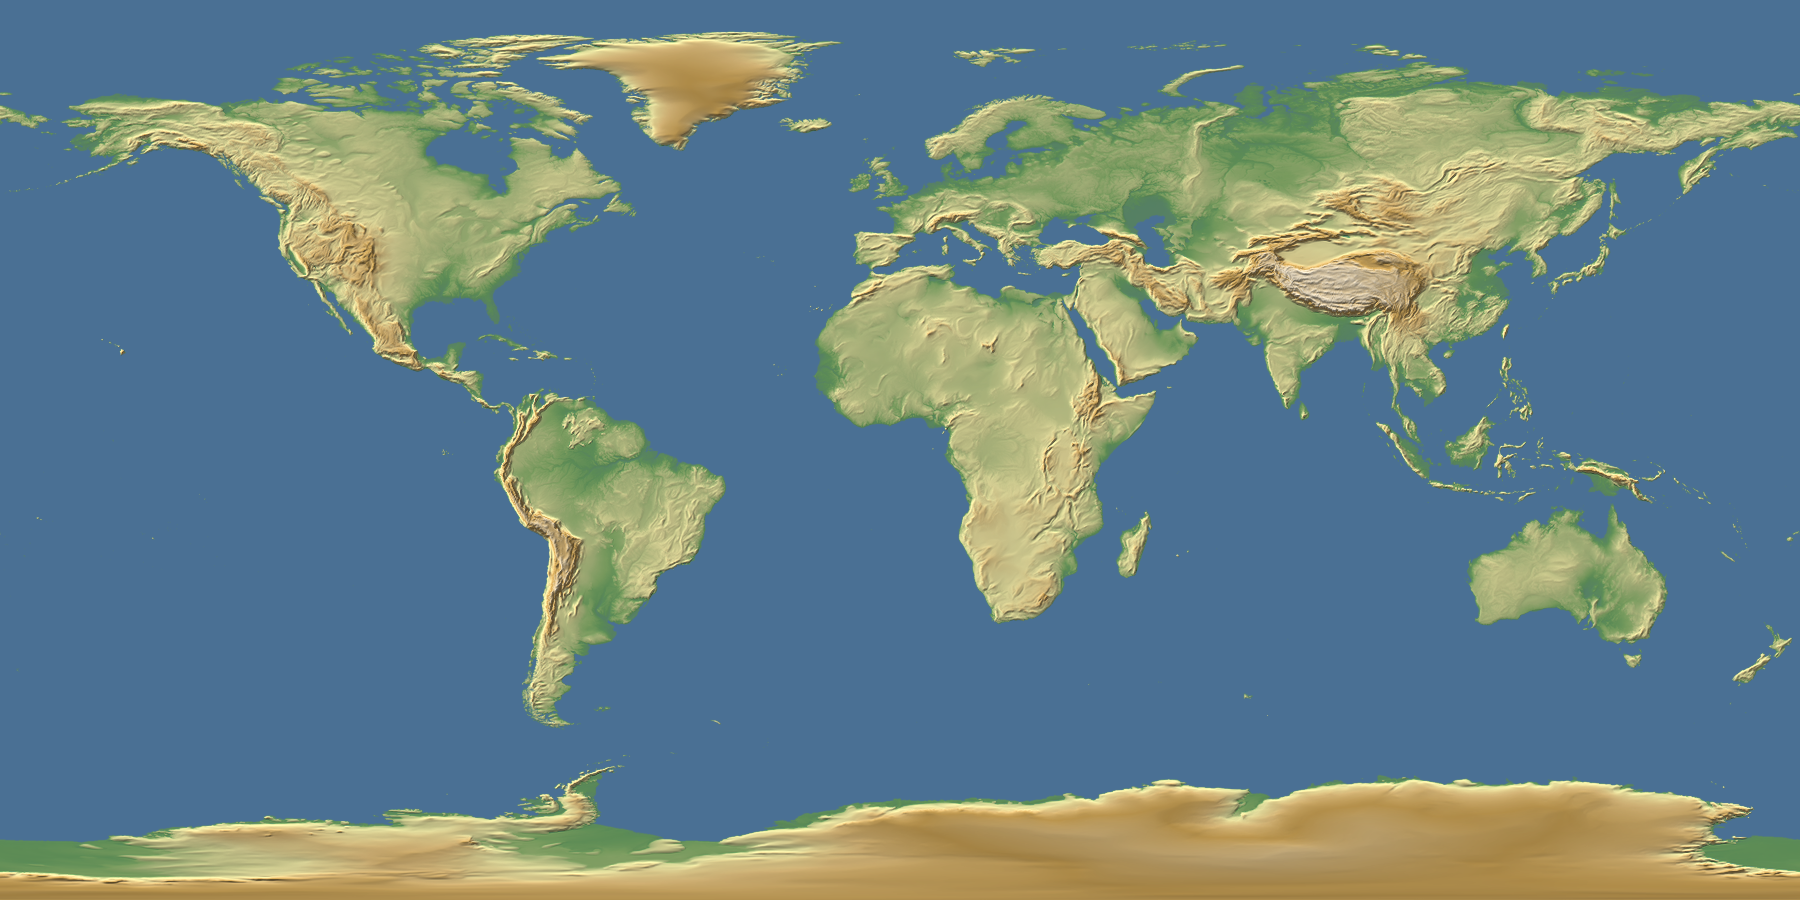 571 nasa earth maps - photo #2